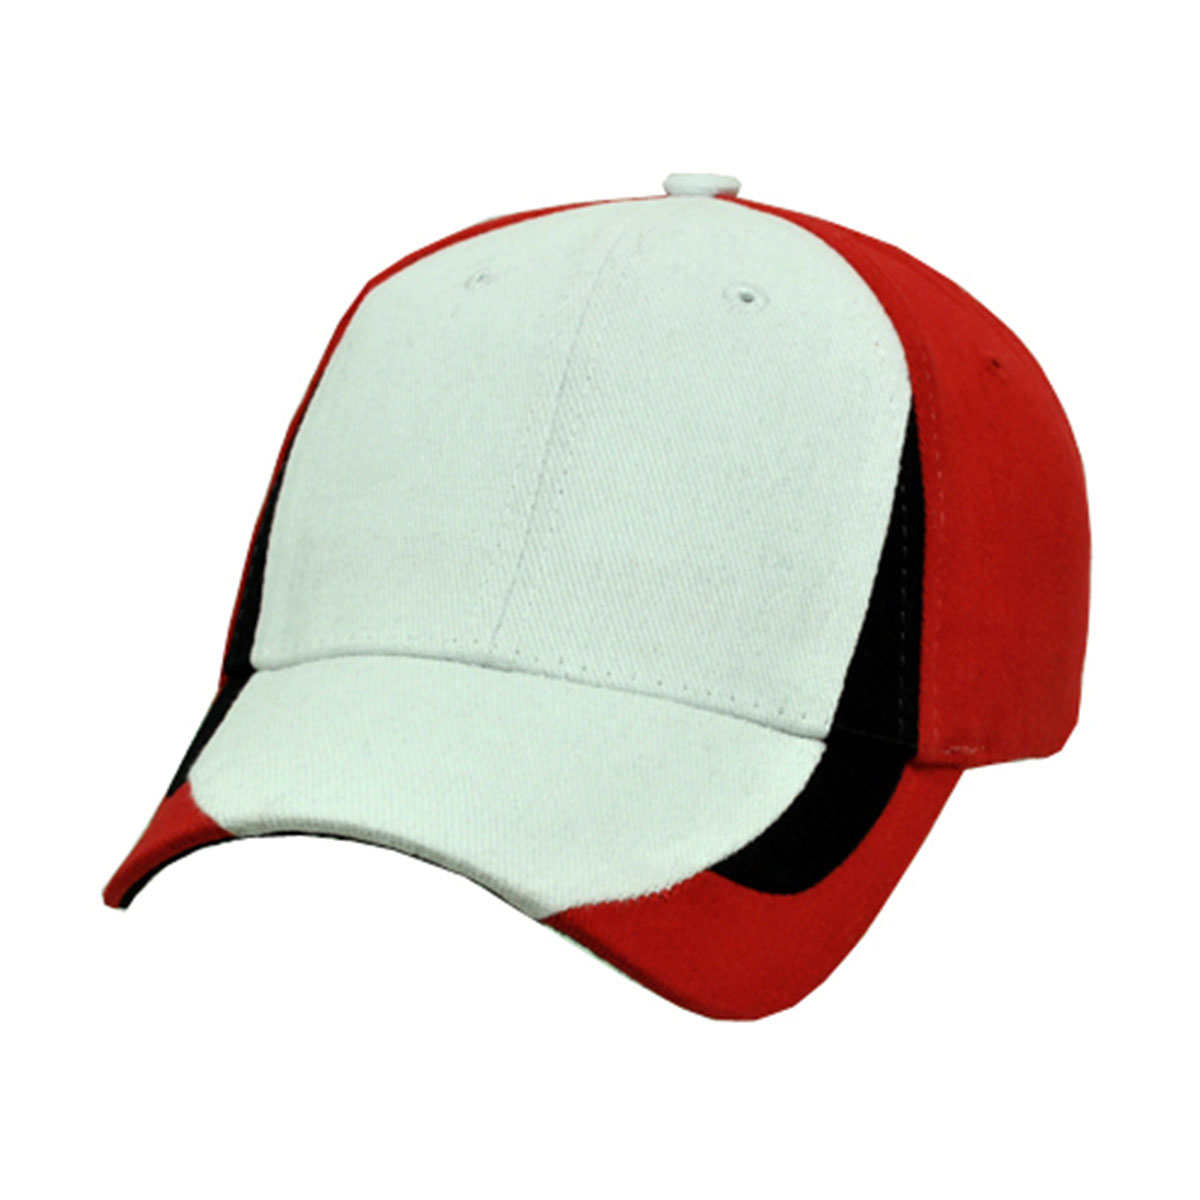 Tribeca Cap-White / Black / Red